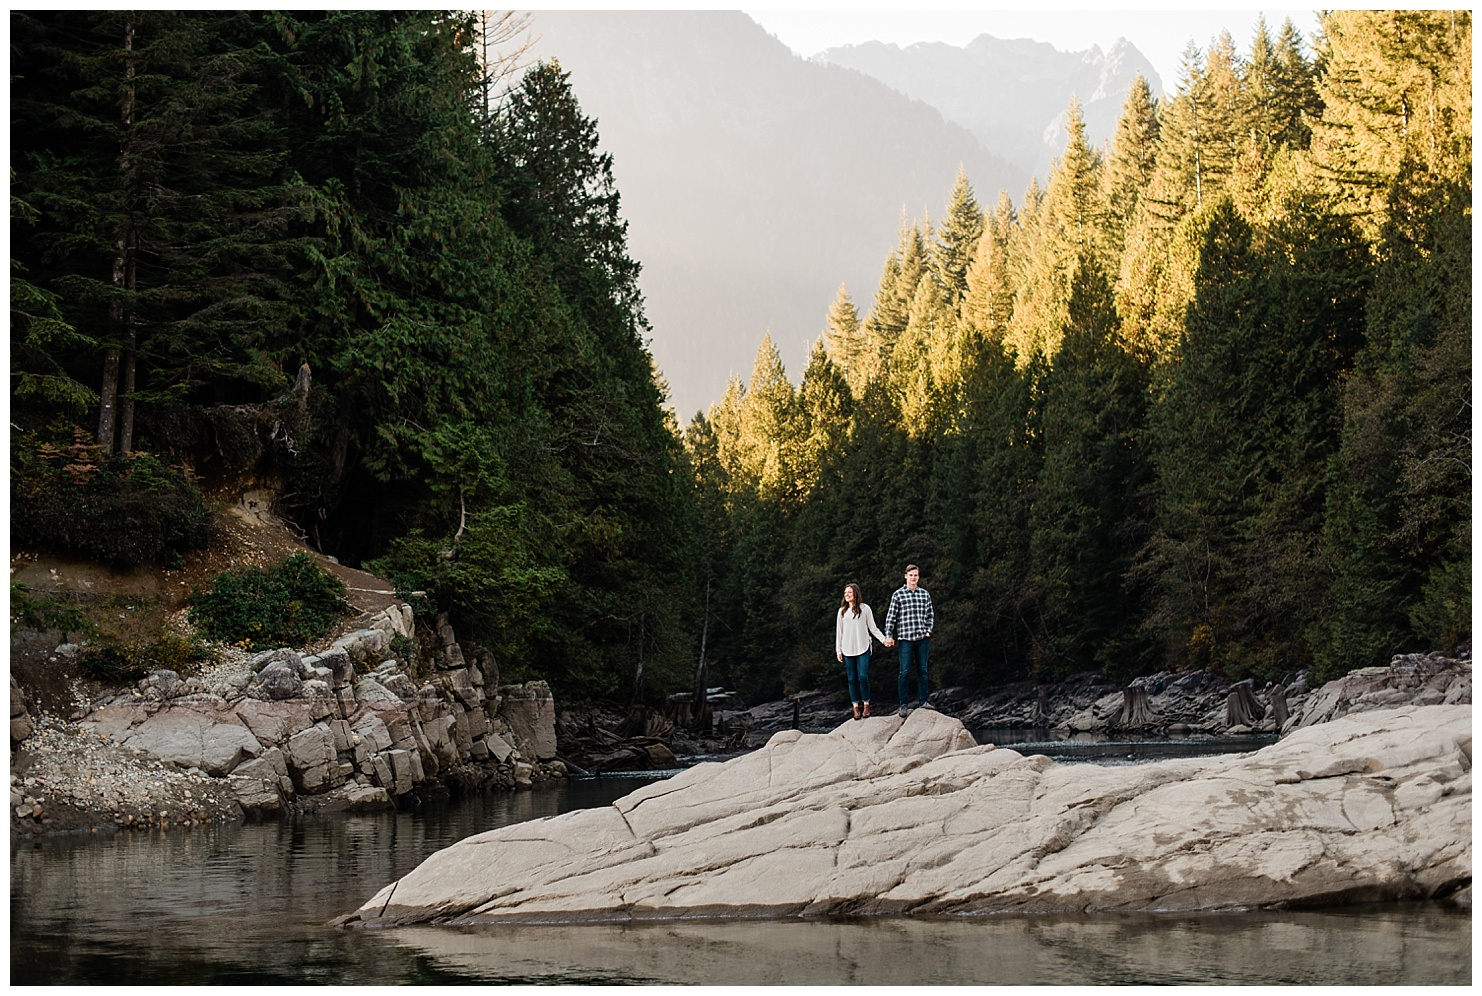 Golden Ears Provincial Park Engagement Session by Forthright Photo, PNW Photographers